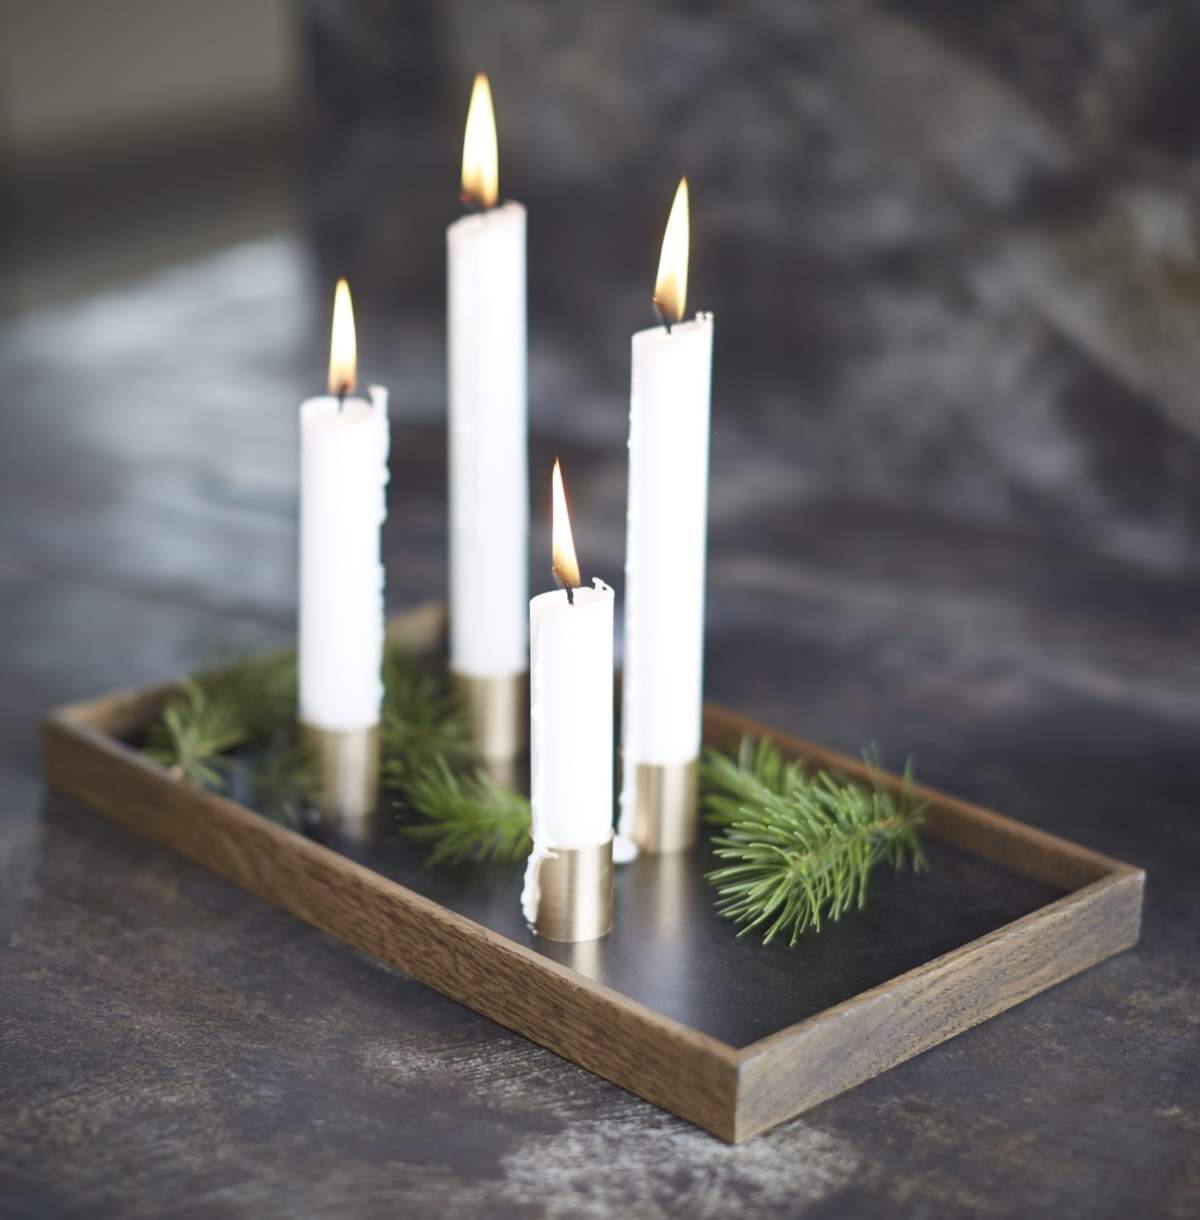 Candle Tray De Luxe with a black oiled frame andmagnetic candle holders made from solid brass.